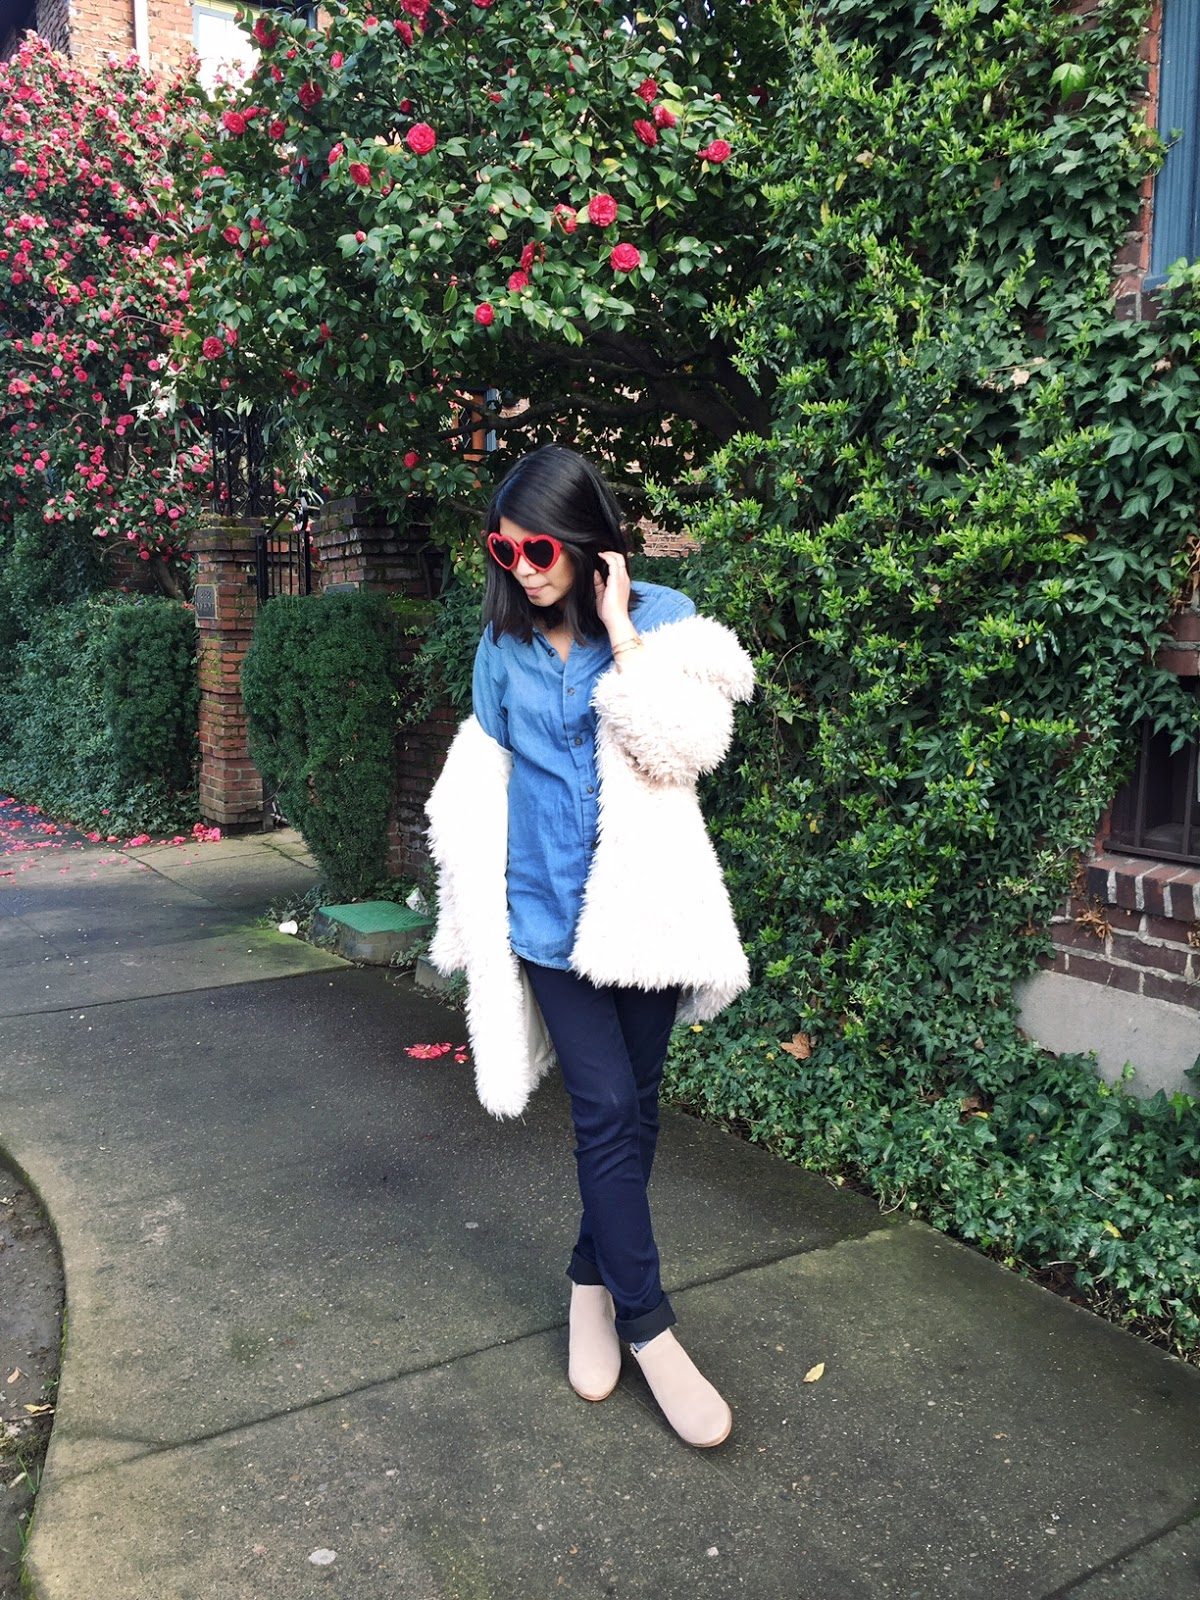 portland blogger, pdx fashion blogger, fblogger, chambray shirt, dark jeans, fluffy faux fur coat, heart sunglasses, camel boots, wiwt, style diaries, portland street style, style the bump, maternity style